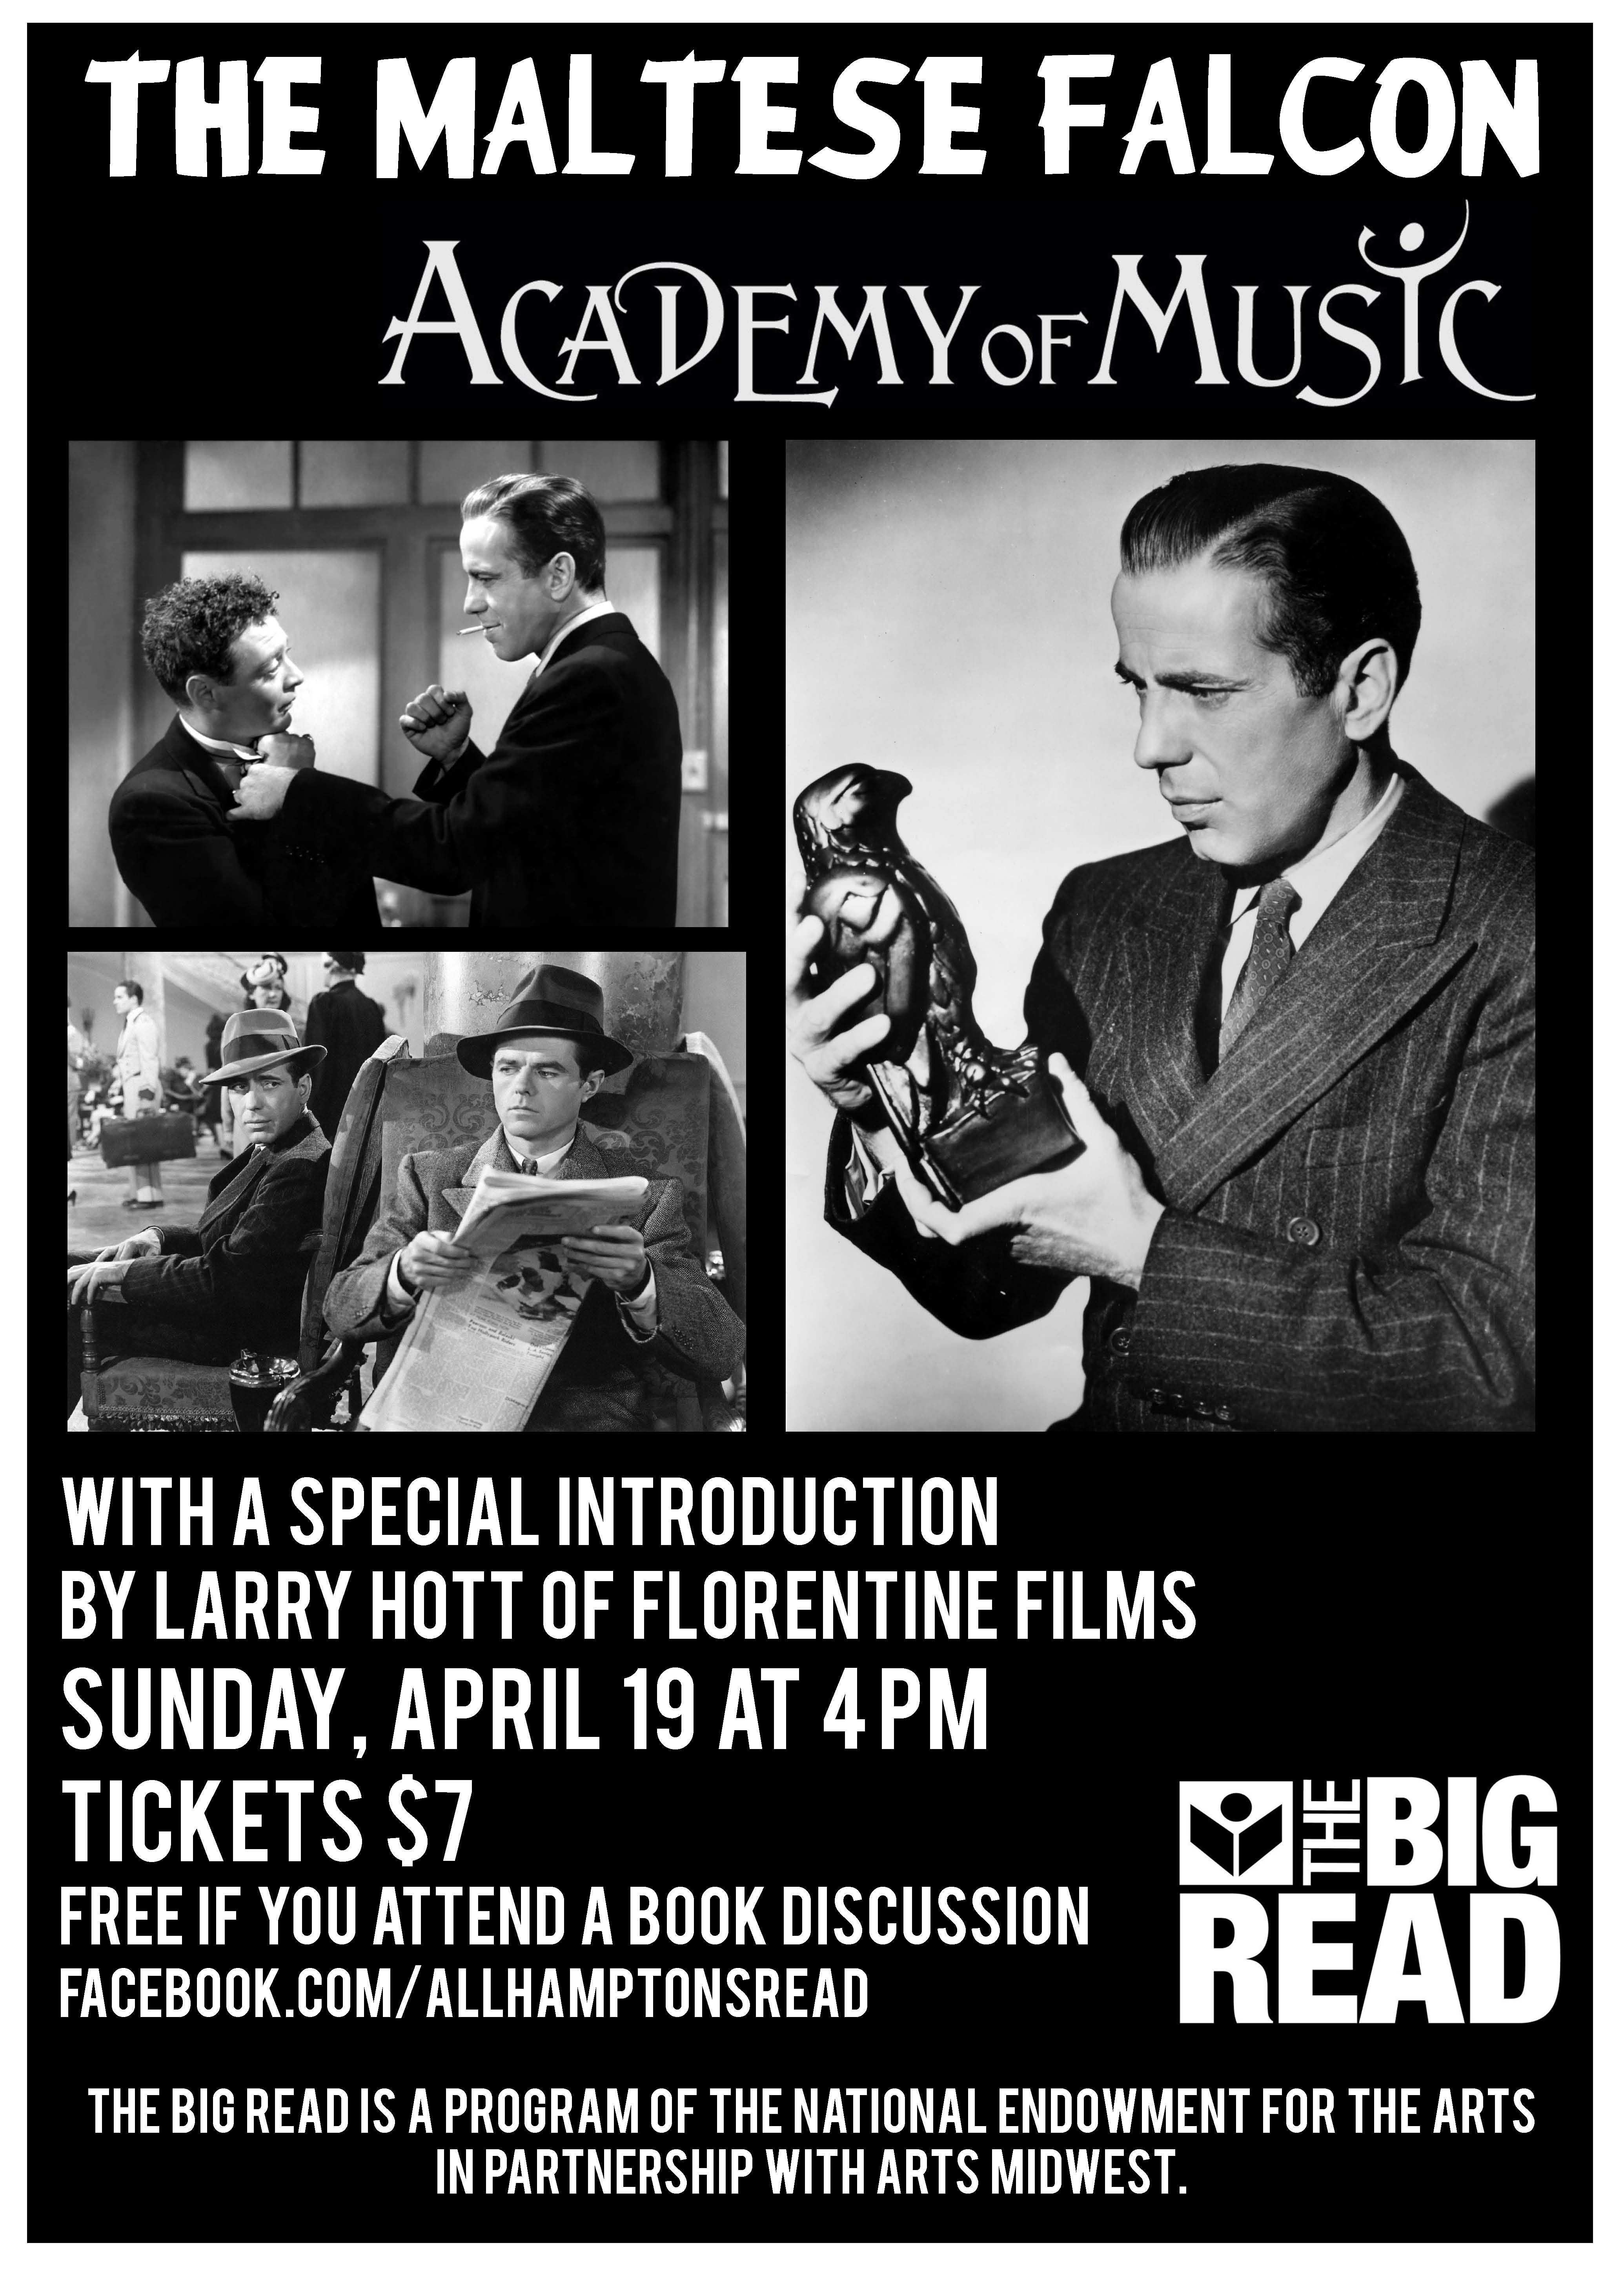 Poster For A Screening Of The Film Version Of The Maltese Falcon Courtesy Of The Public Library Association O Book Discussion The Big Read Library Association